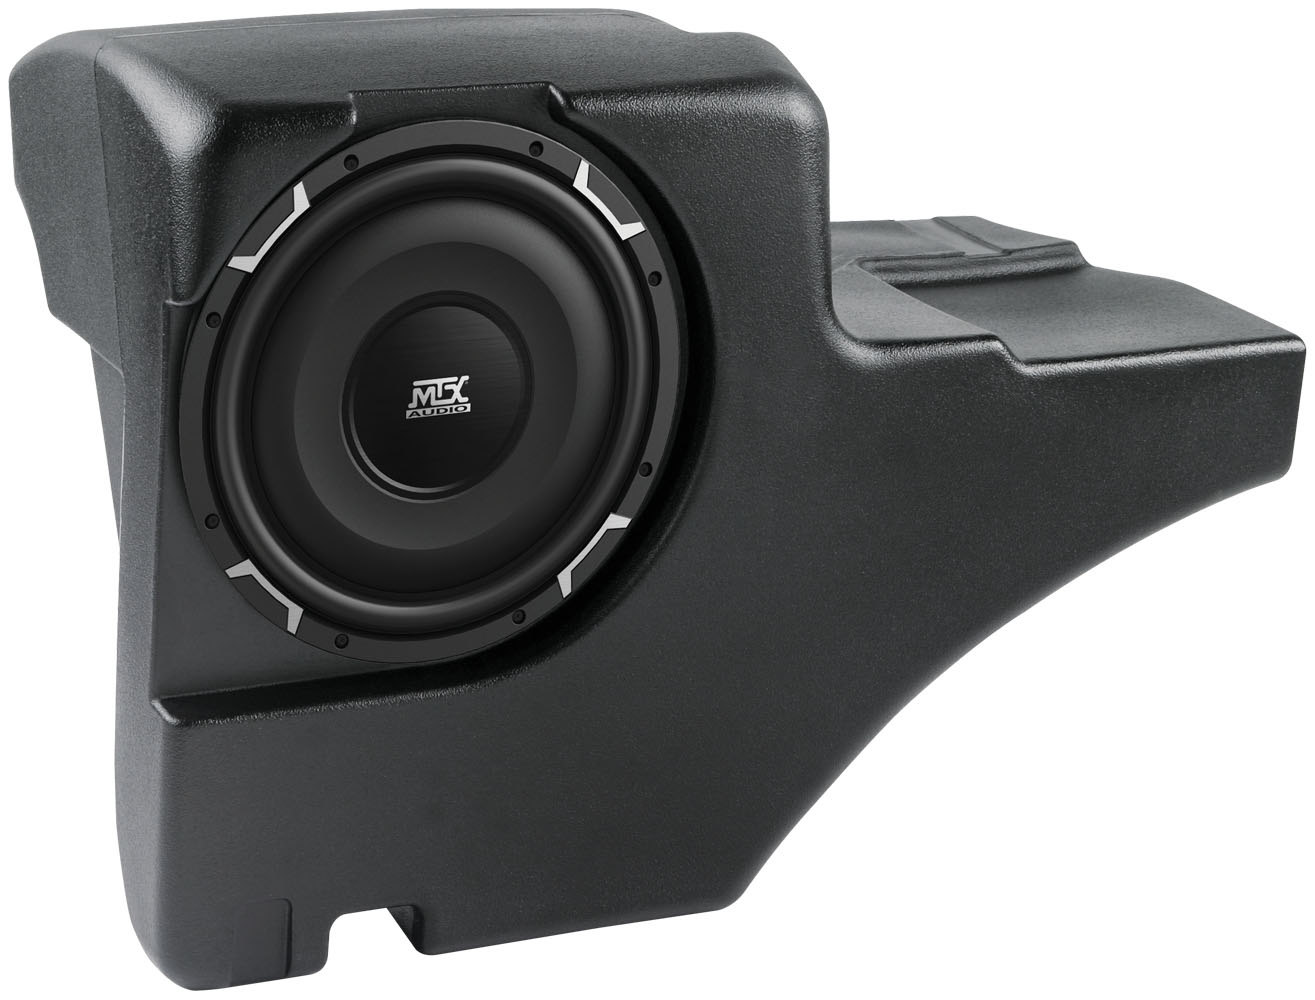 hight resolution of chevrolet tahoe 2001 2006 thunderform custom subwoofer enclosure mtx audio serious about sound